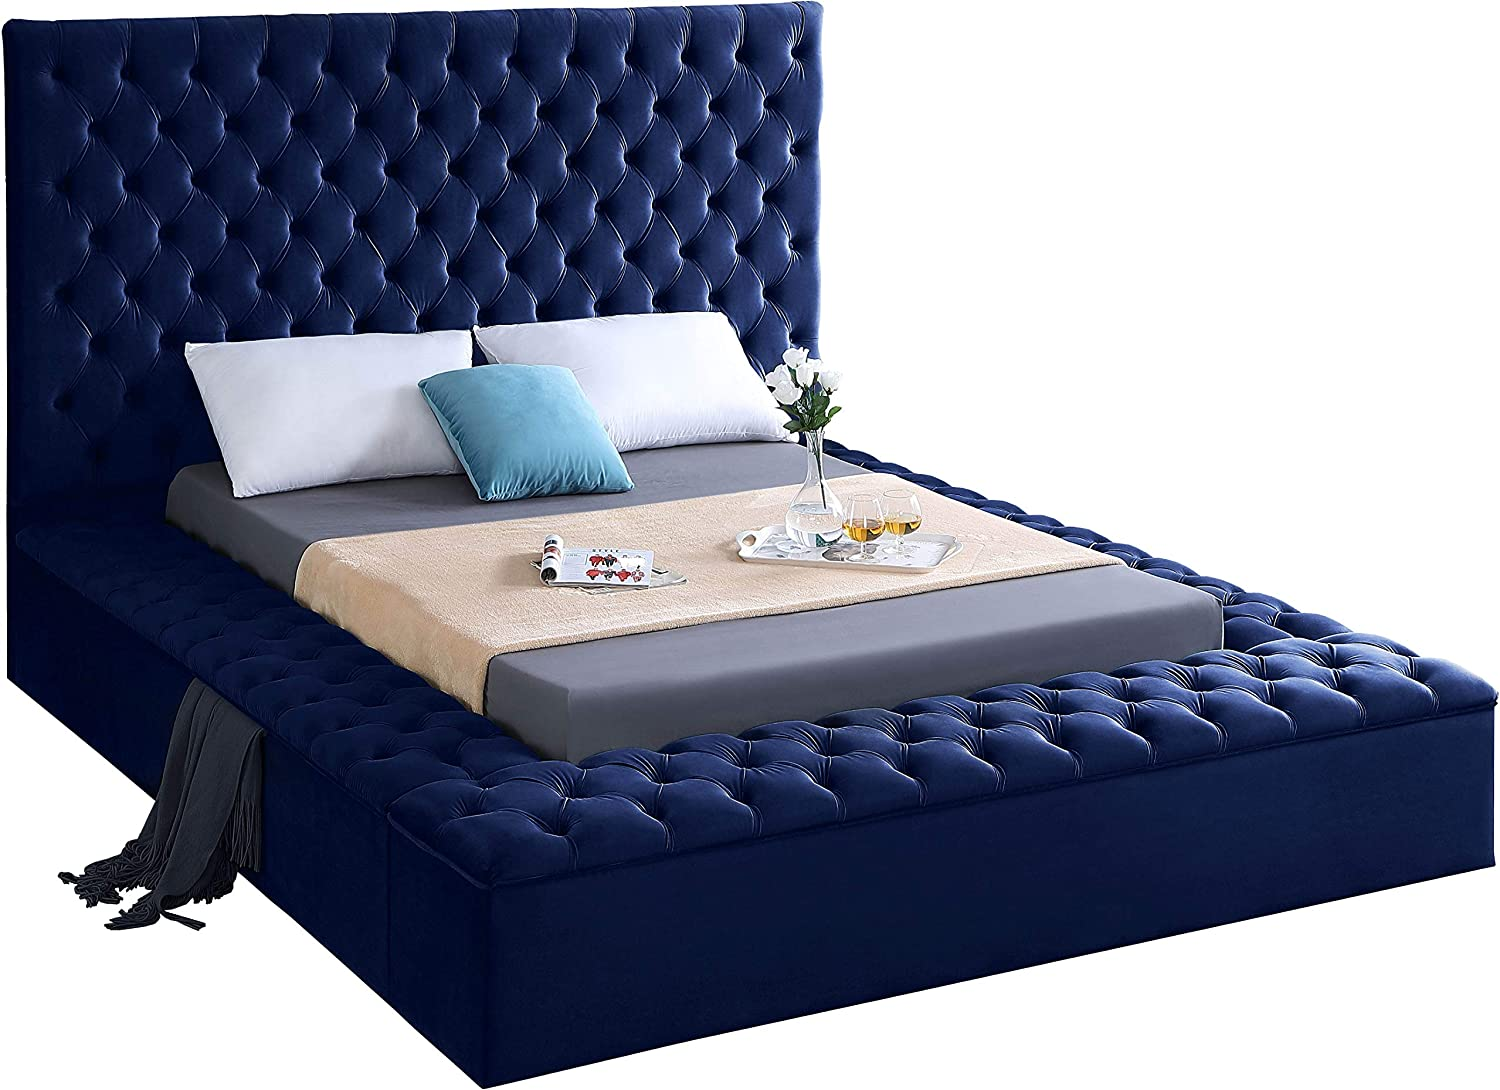 Meridian Furniture BlissNavy-K Bliss Collection Modern   Contemporary Navy Velvet Upholstered Bed with Deep Tufting, with Storage Rails and Footboard, King,